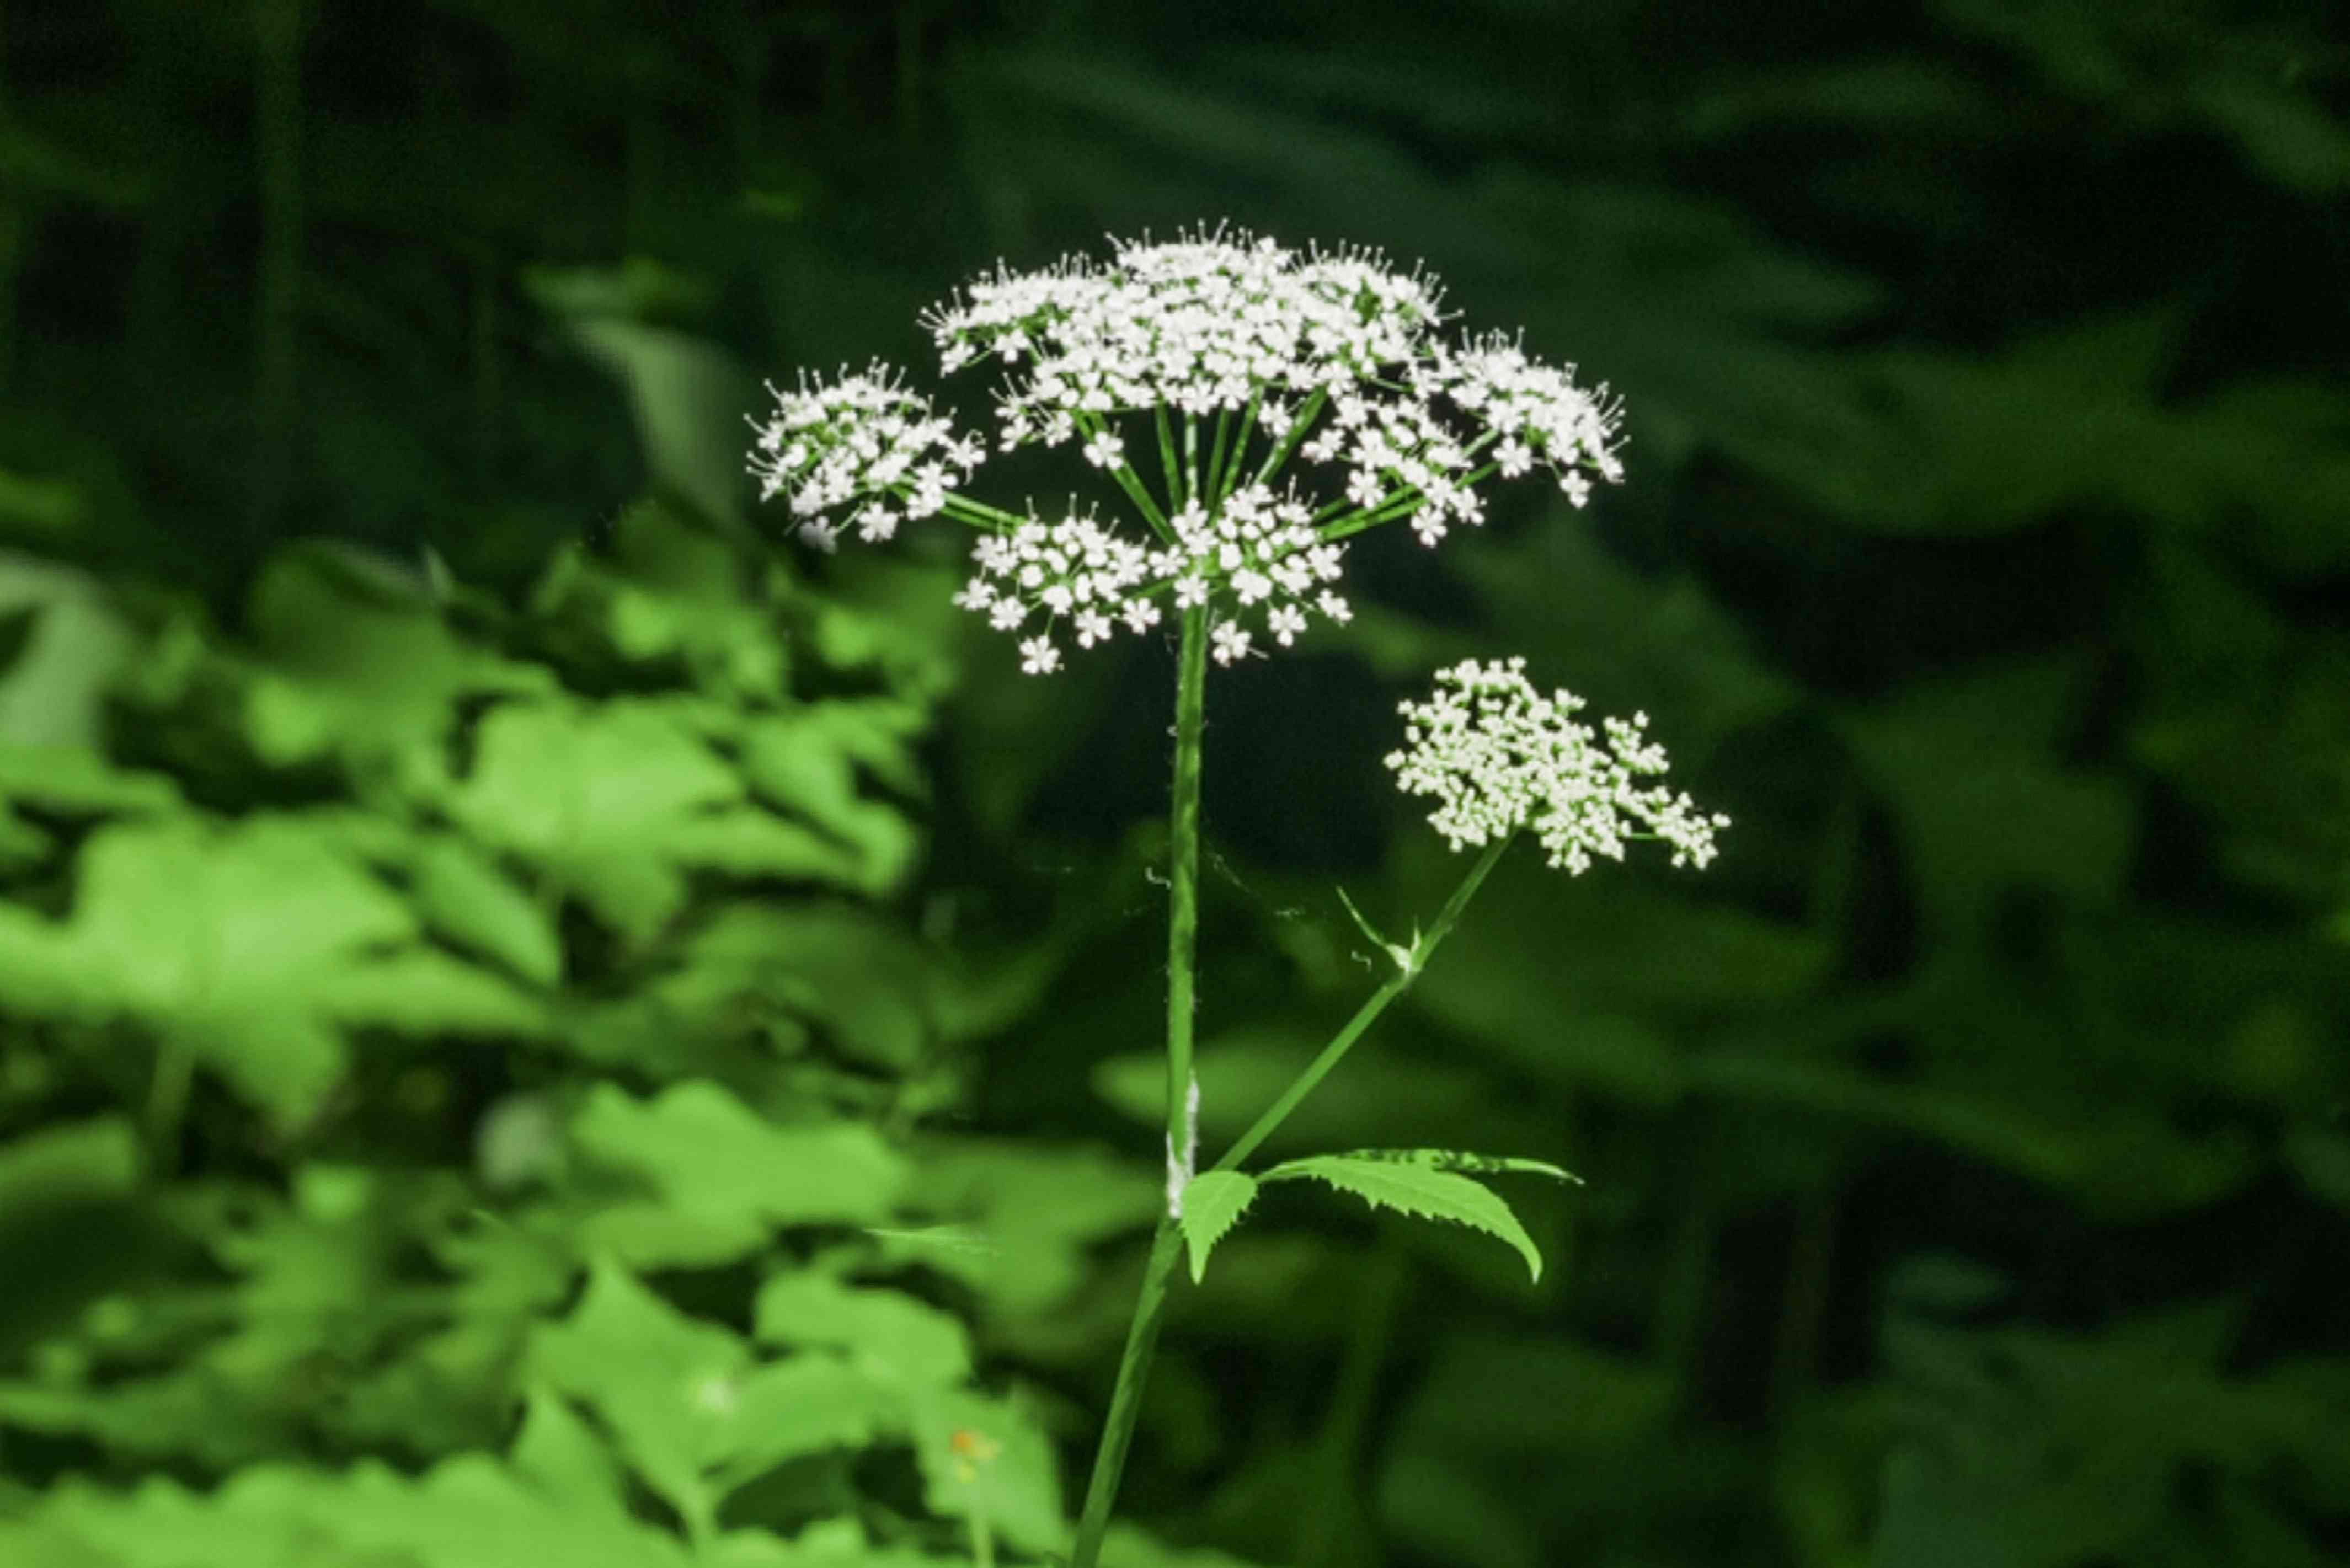 Bishop's weed plant with small white flower umbels on single stem